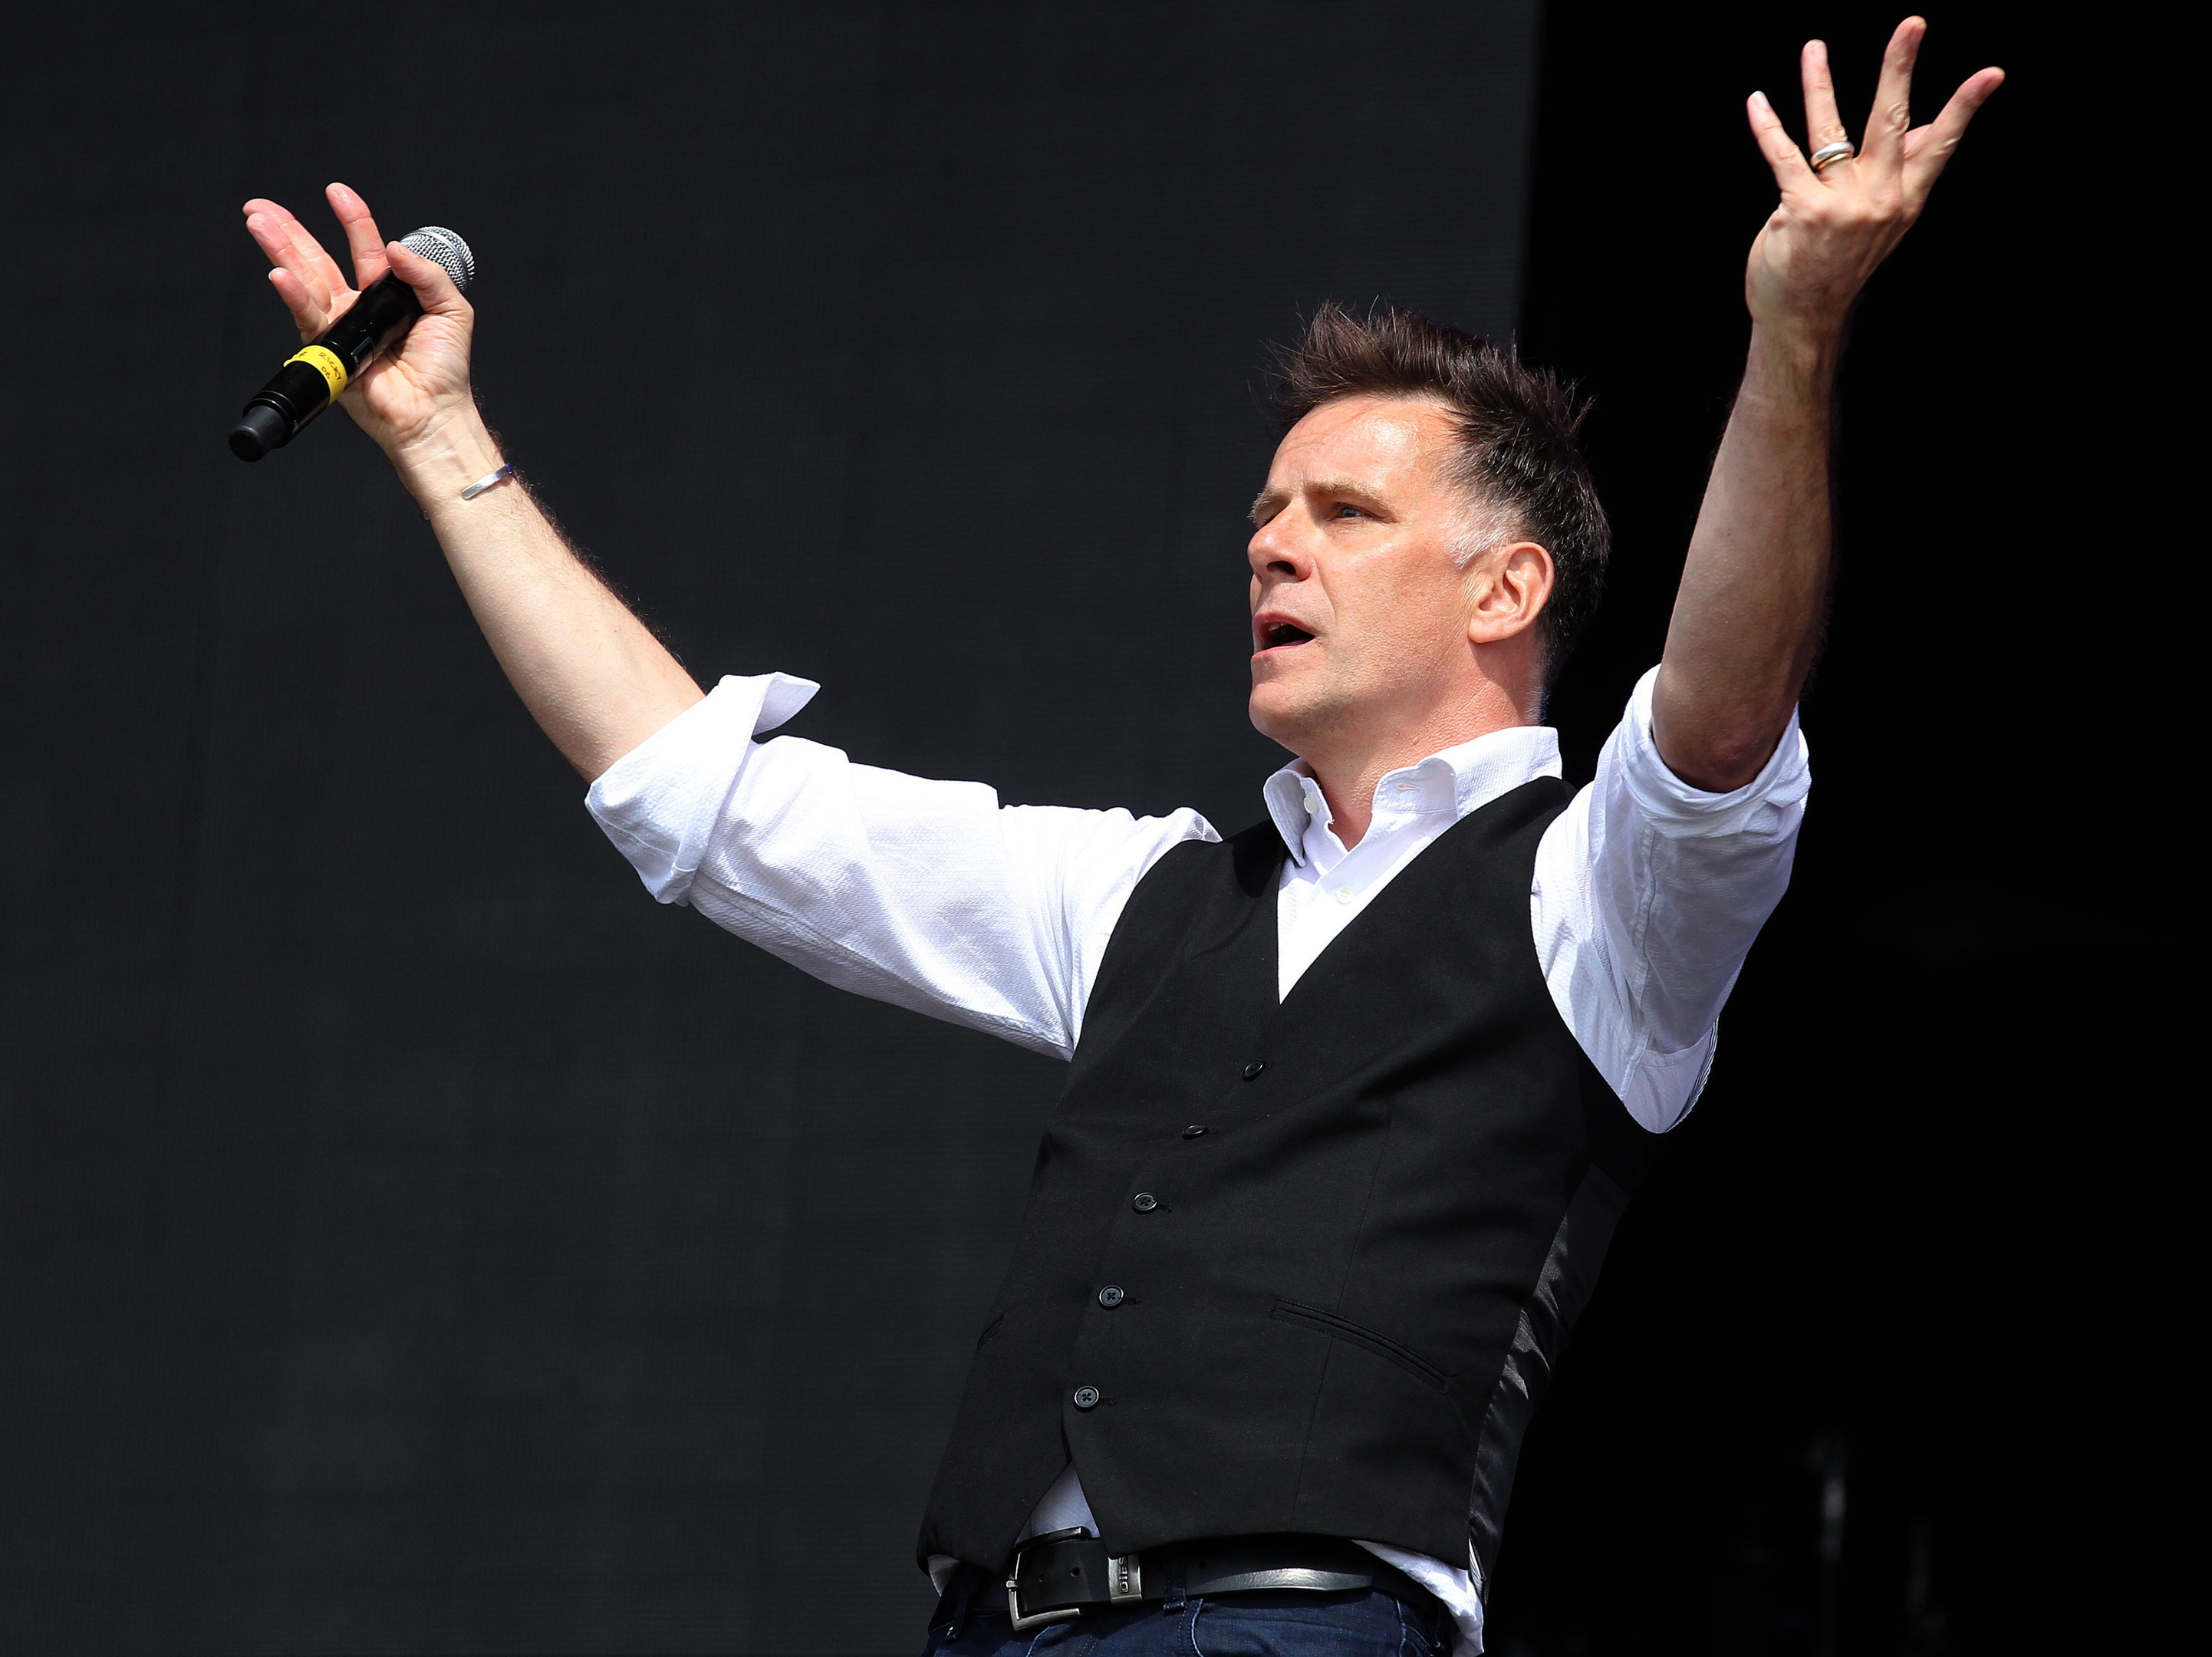 eacon Blue's Ricky Ross performing at T in the Park.